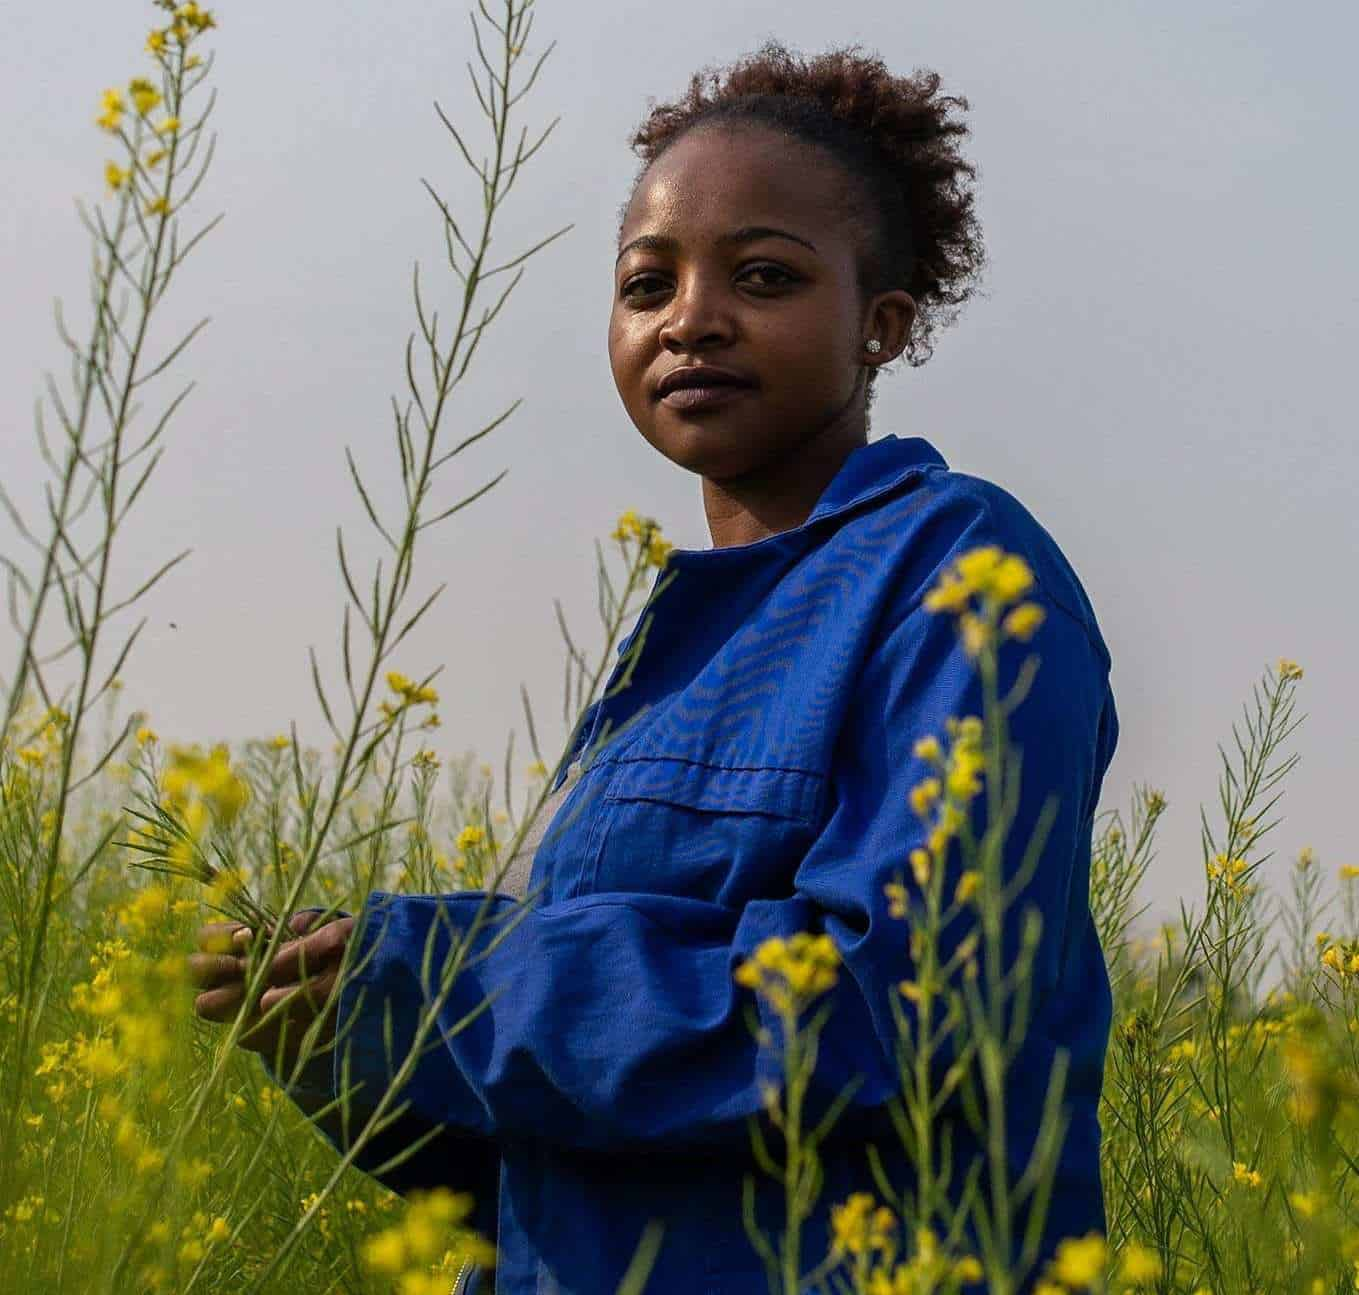 6 September 2018: 27-year-old Dineo Boshomane standing in a field of some of the Chinese spinach which she grows on her one-hectare farm in Northern Farm, Diepsloot. | Photo: Ihsaan Haffejee, New Frame.